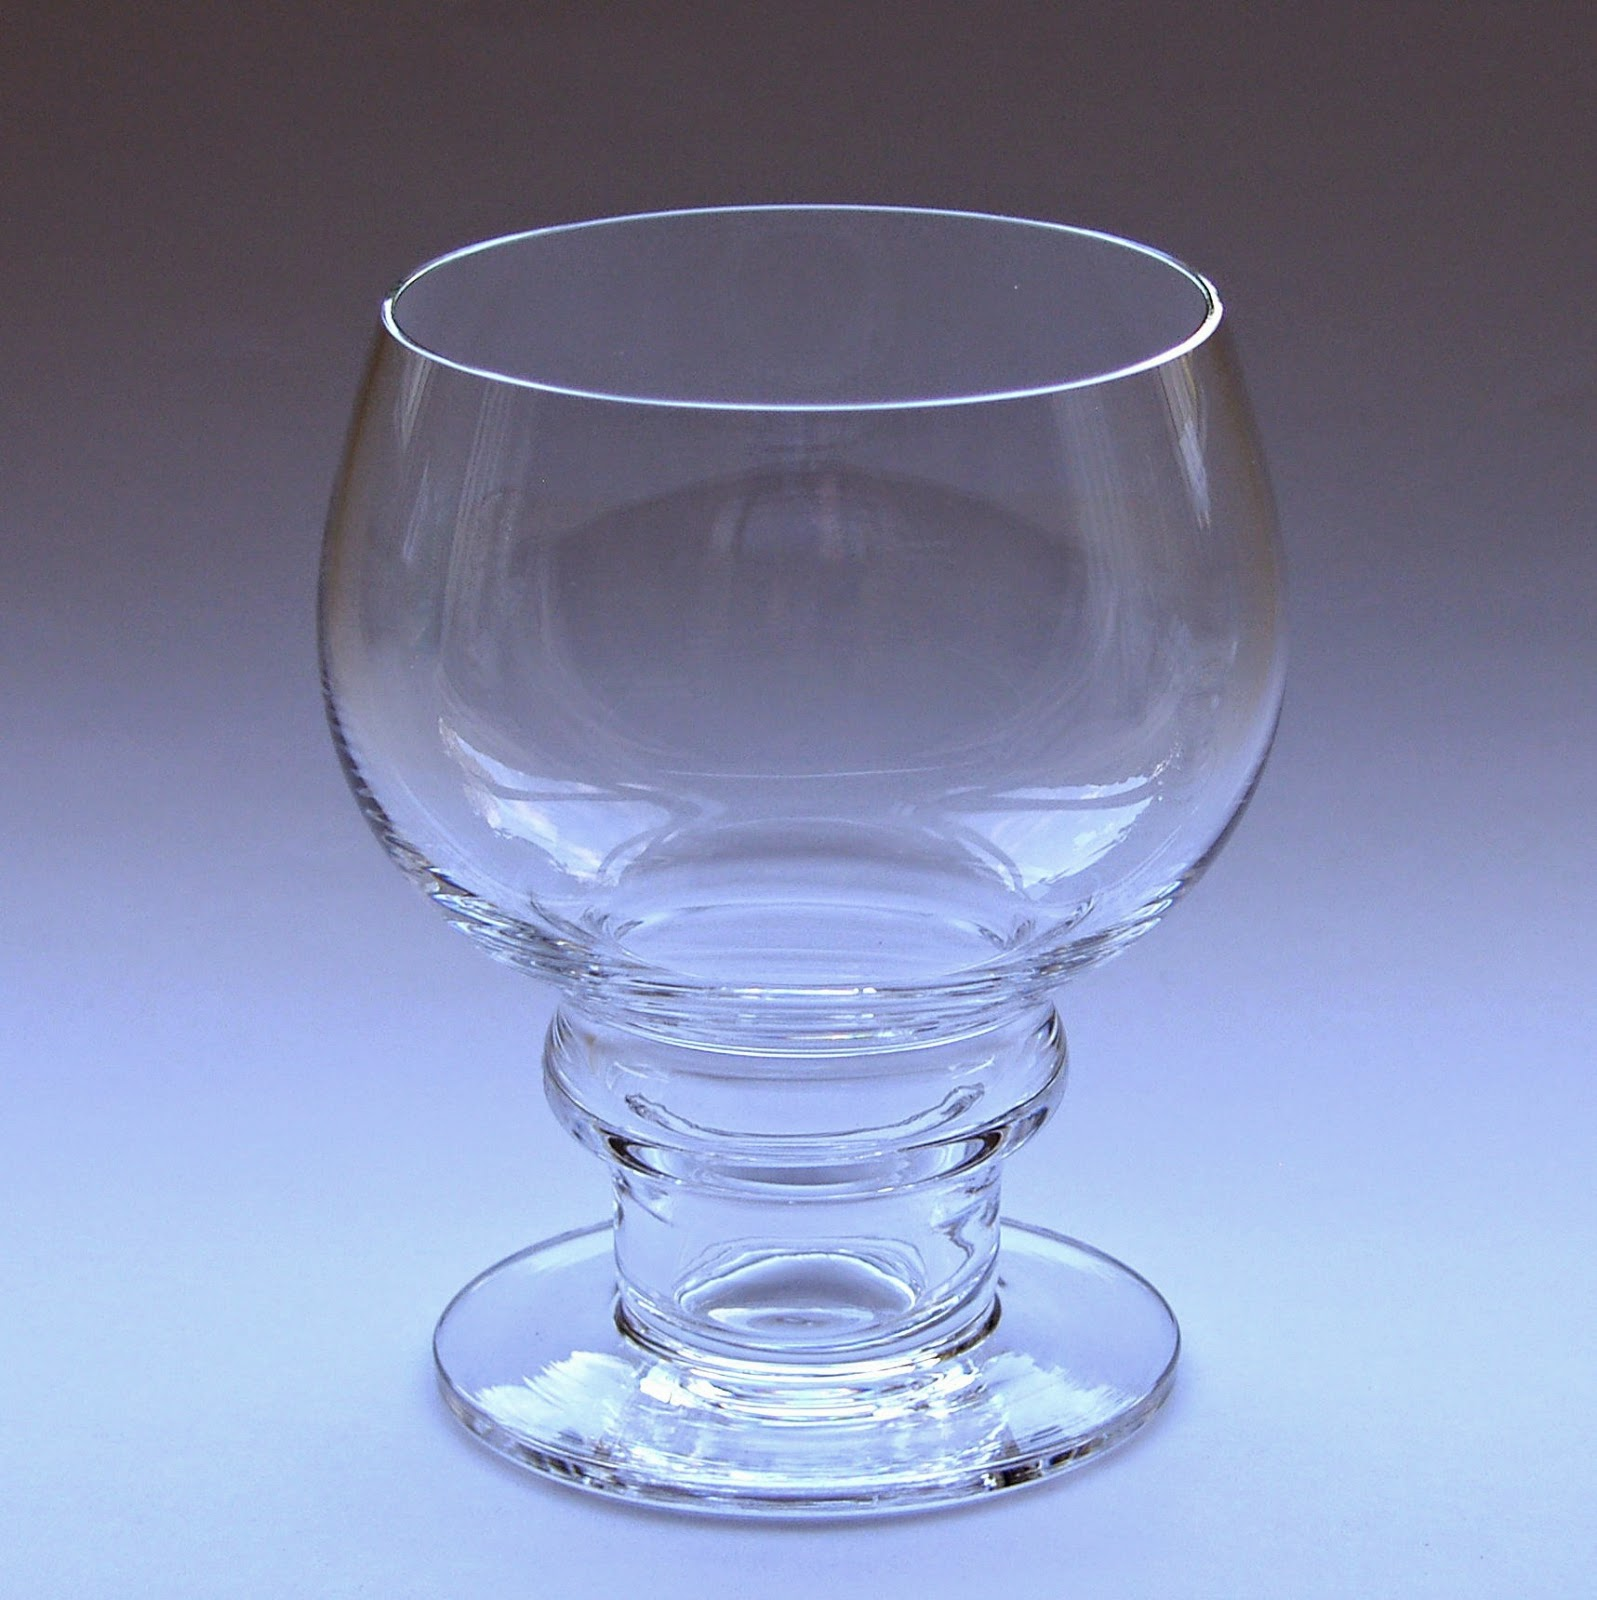 Ft12 The Ball Glass Service